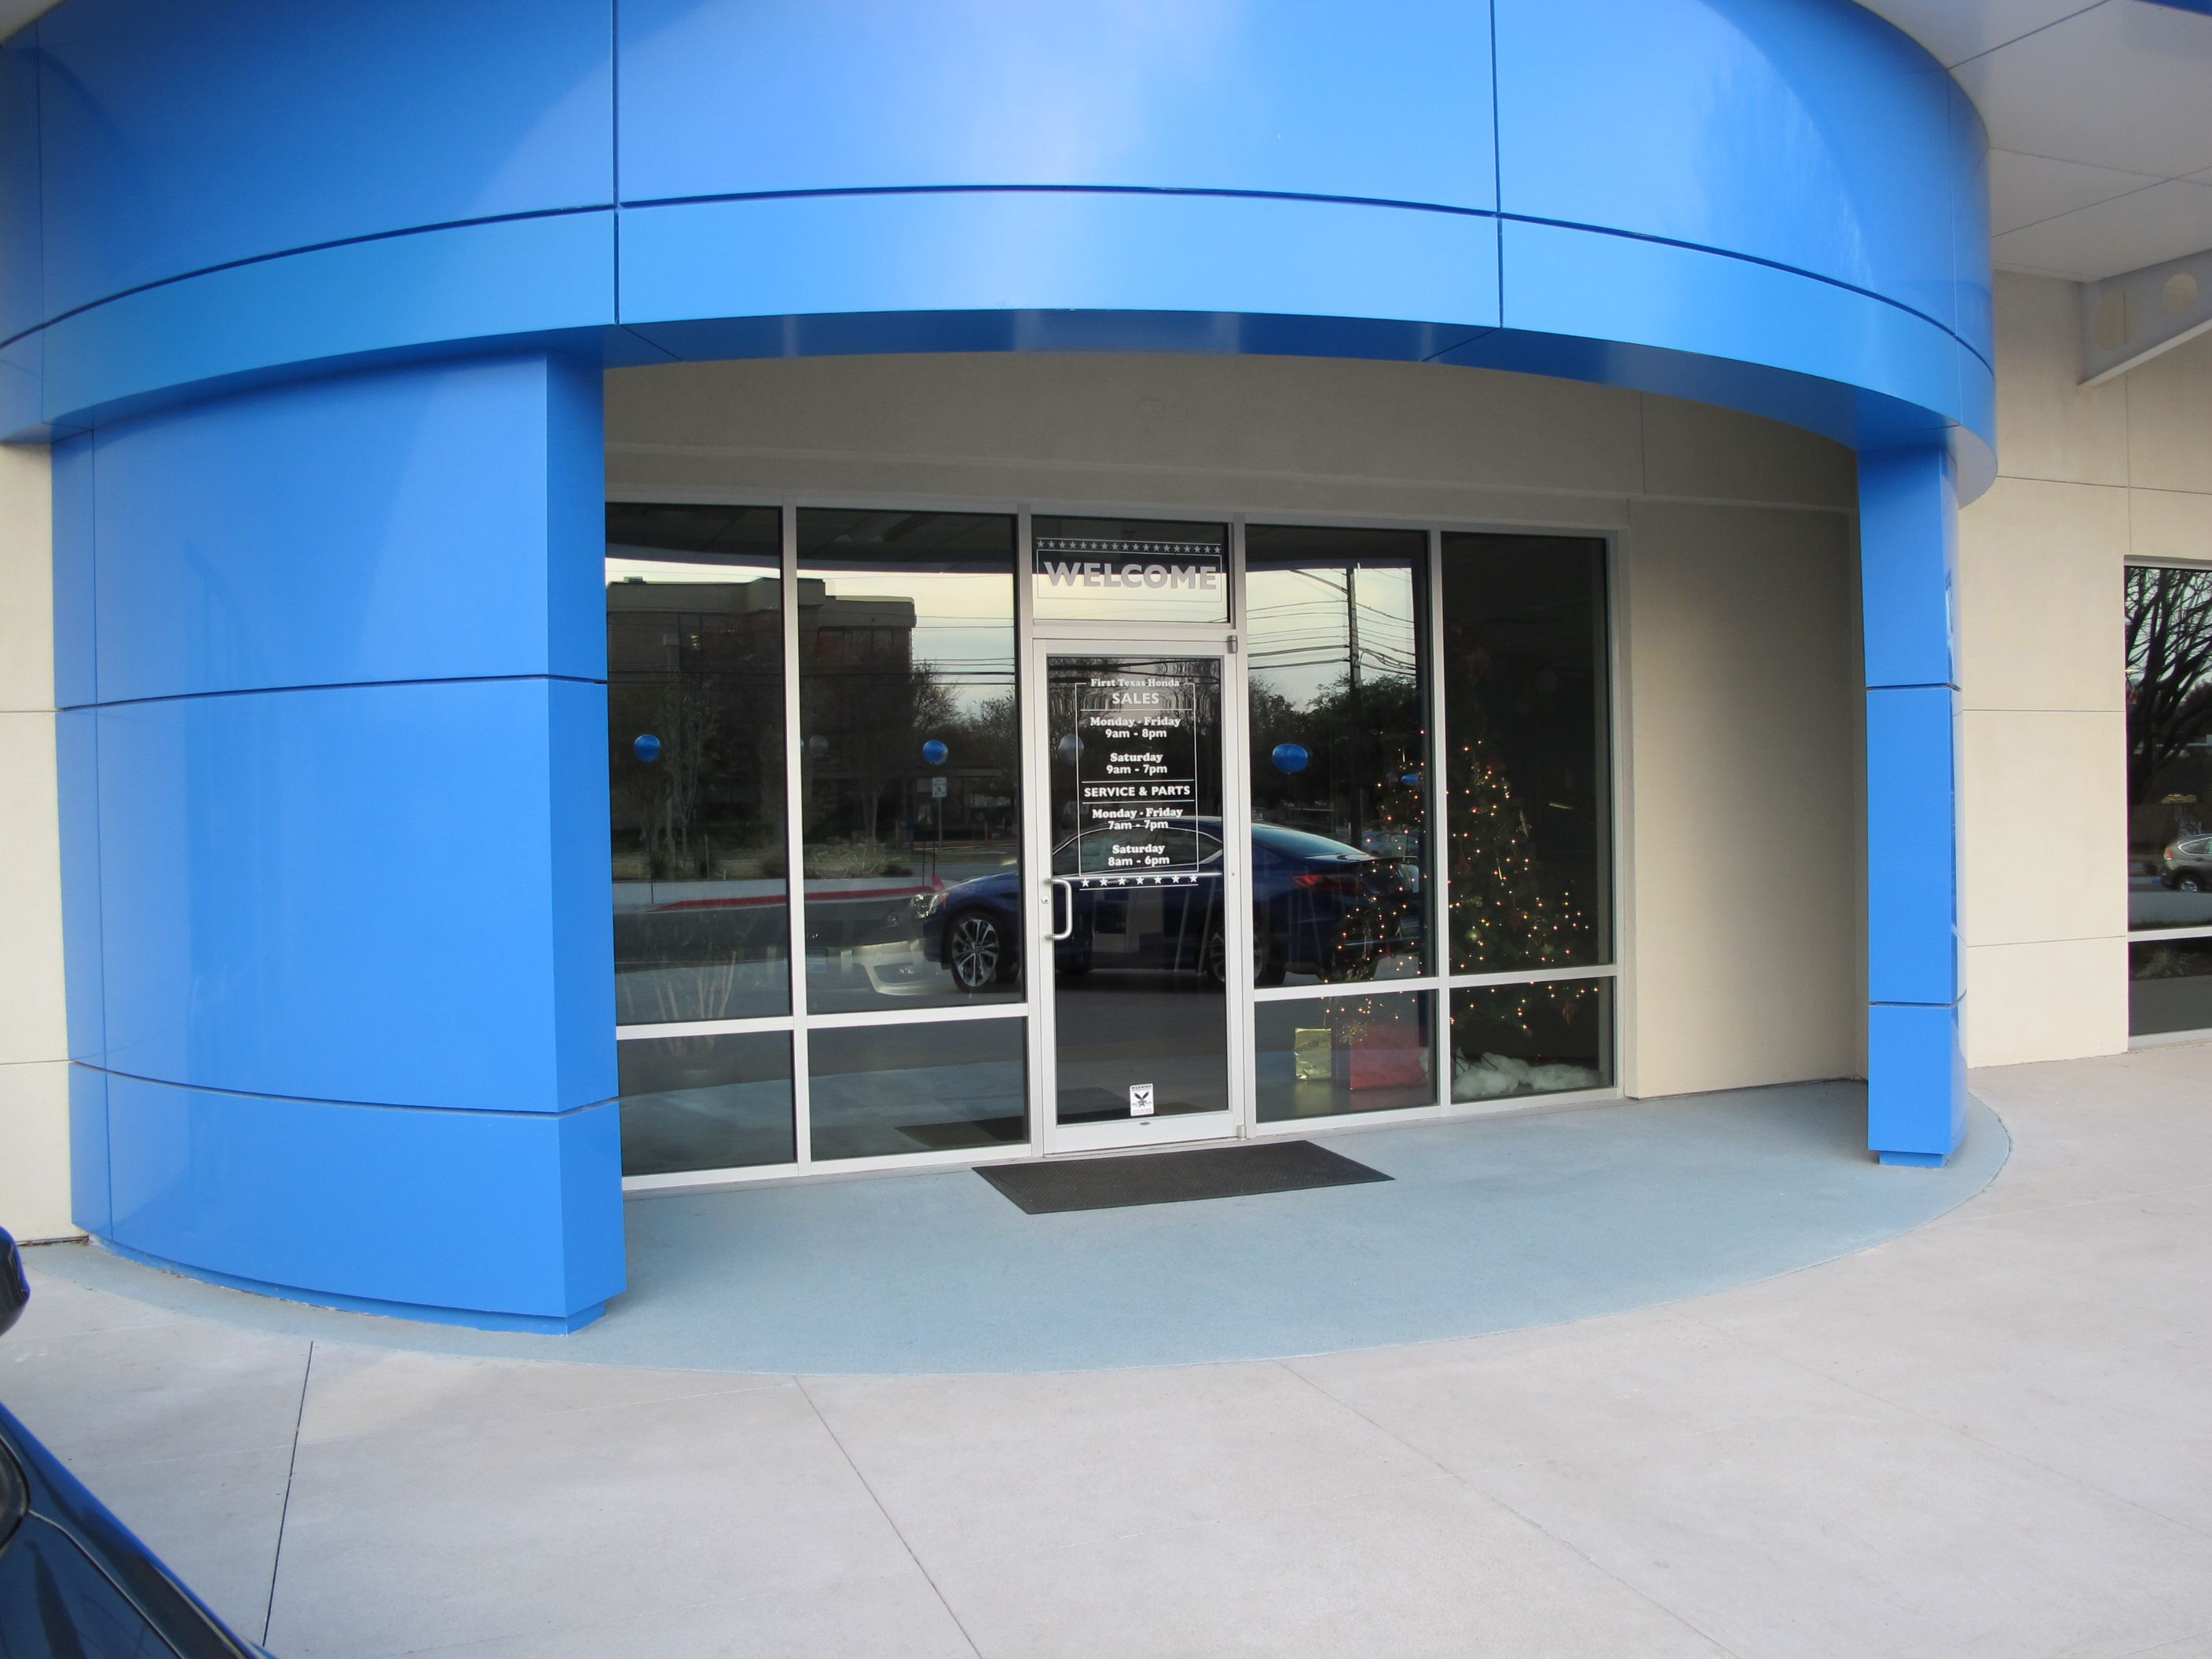 Bomanite Broadcast Aggregate Decorative Concrete Topping makes this Texas Honda Dealership Entrance stunning.